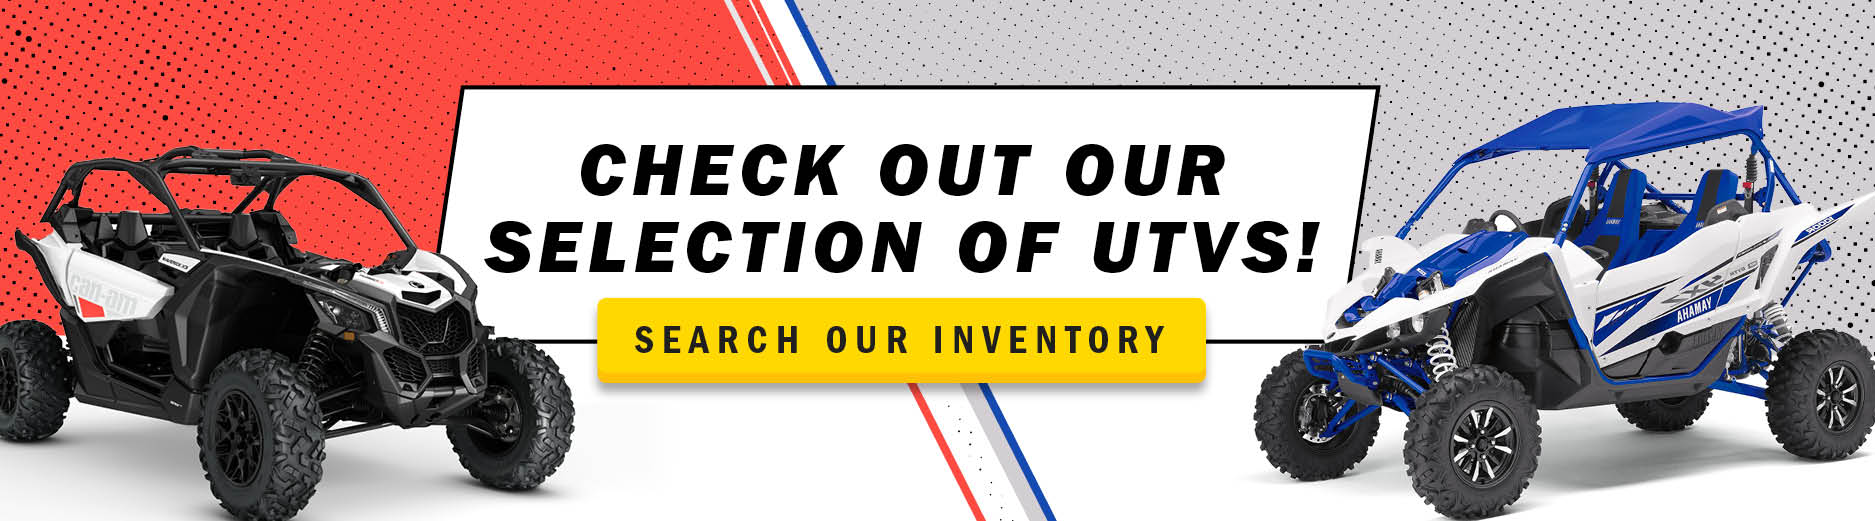 Check out our selection of UTVs!